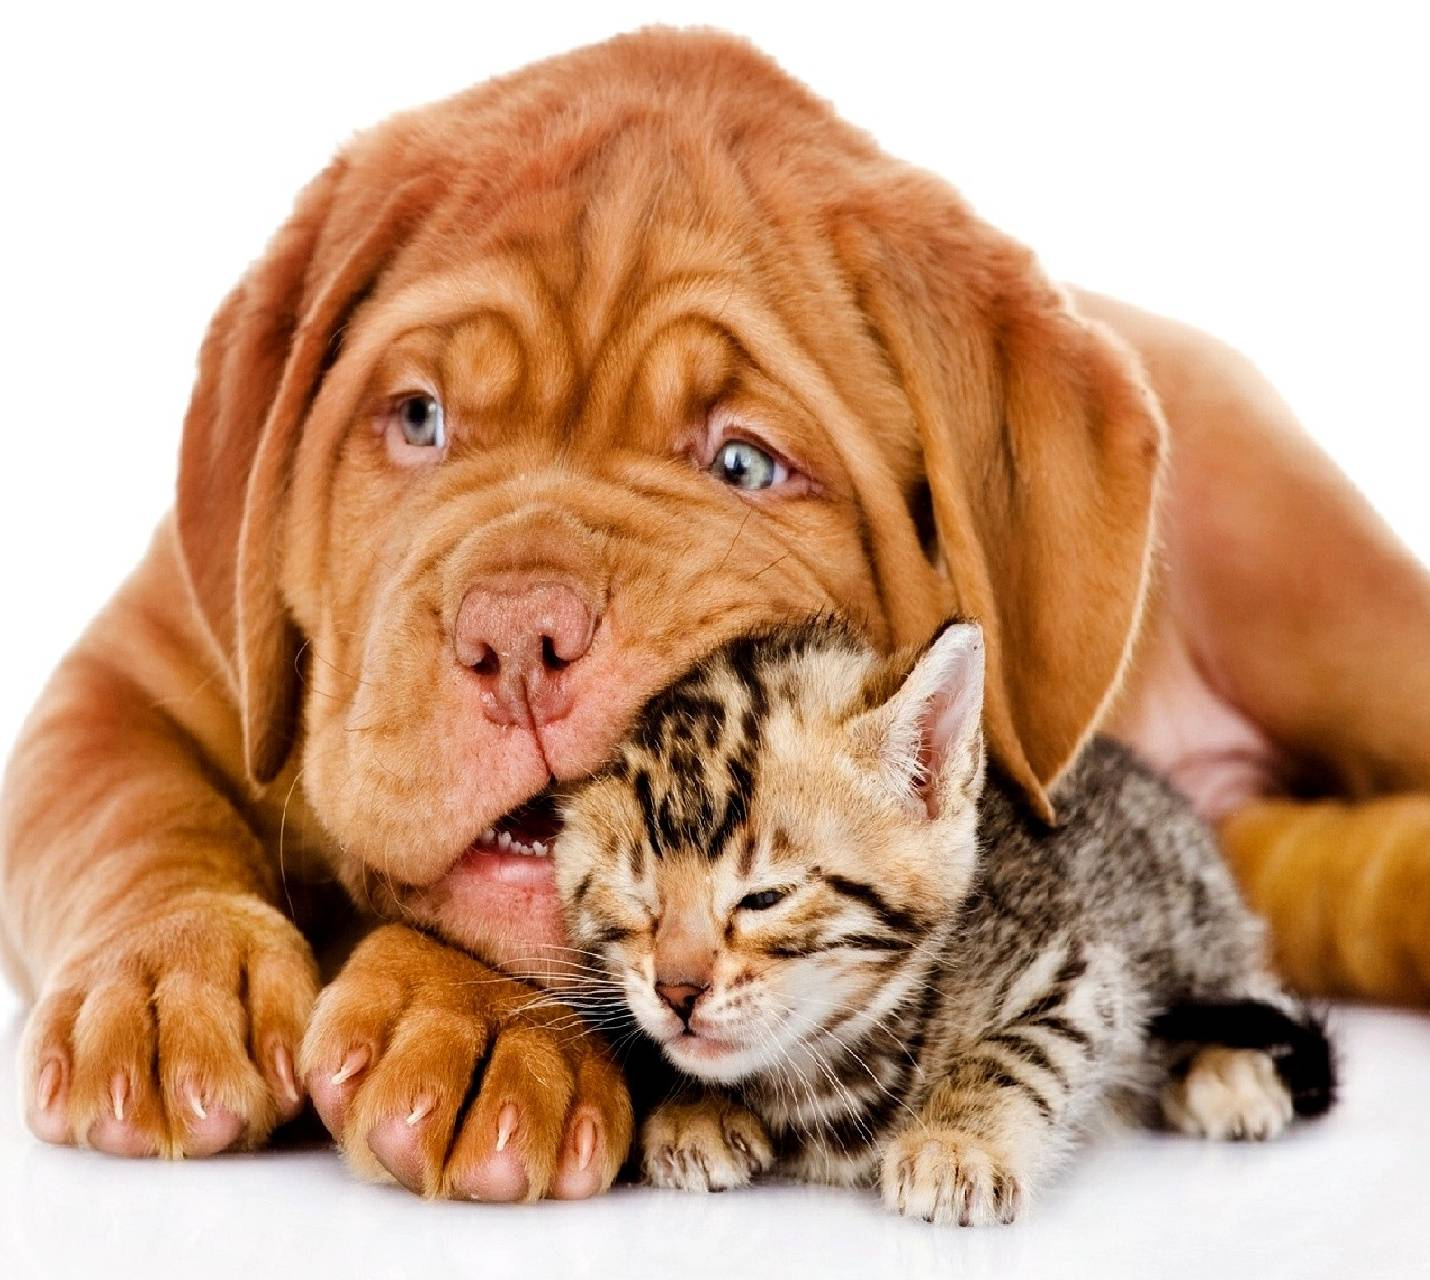 Dog and cat--------